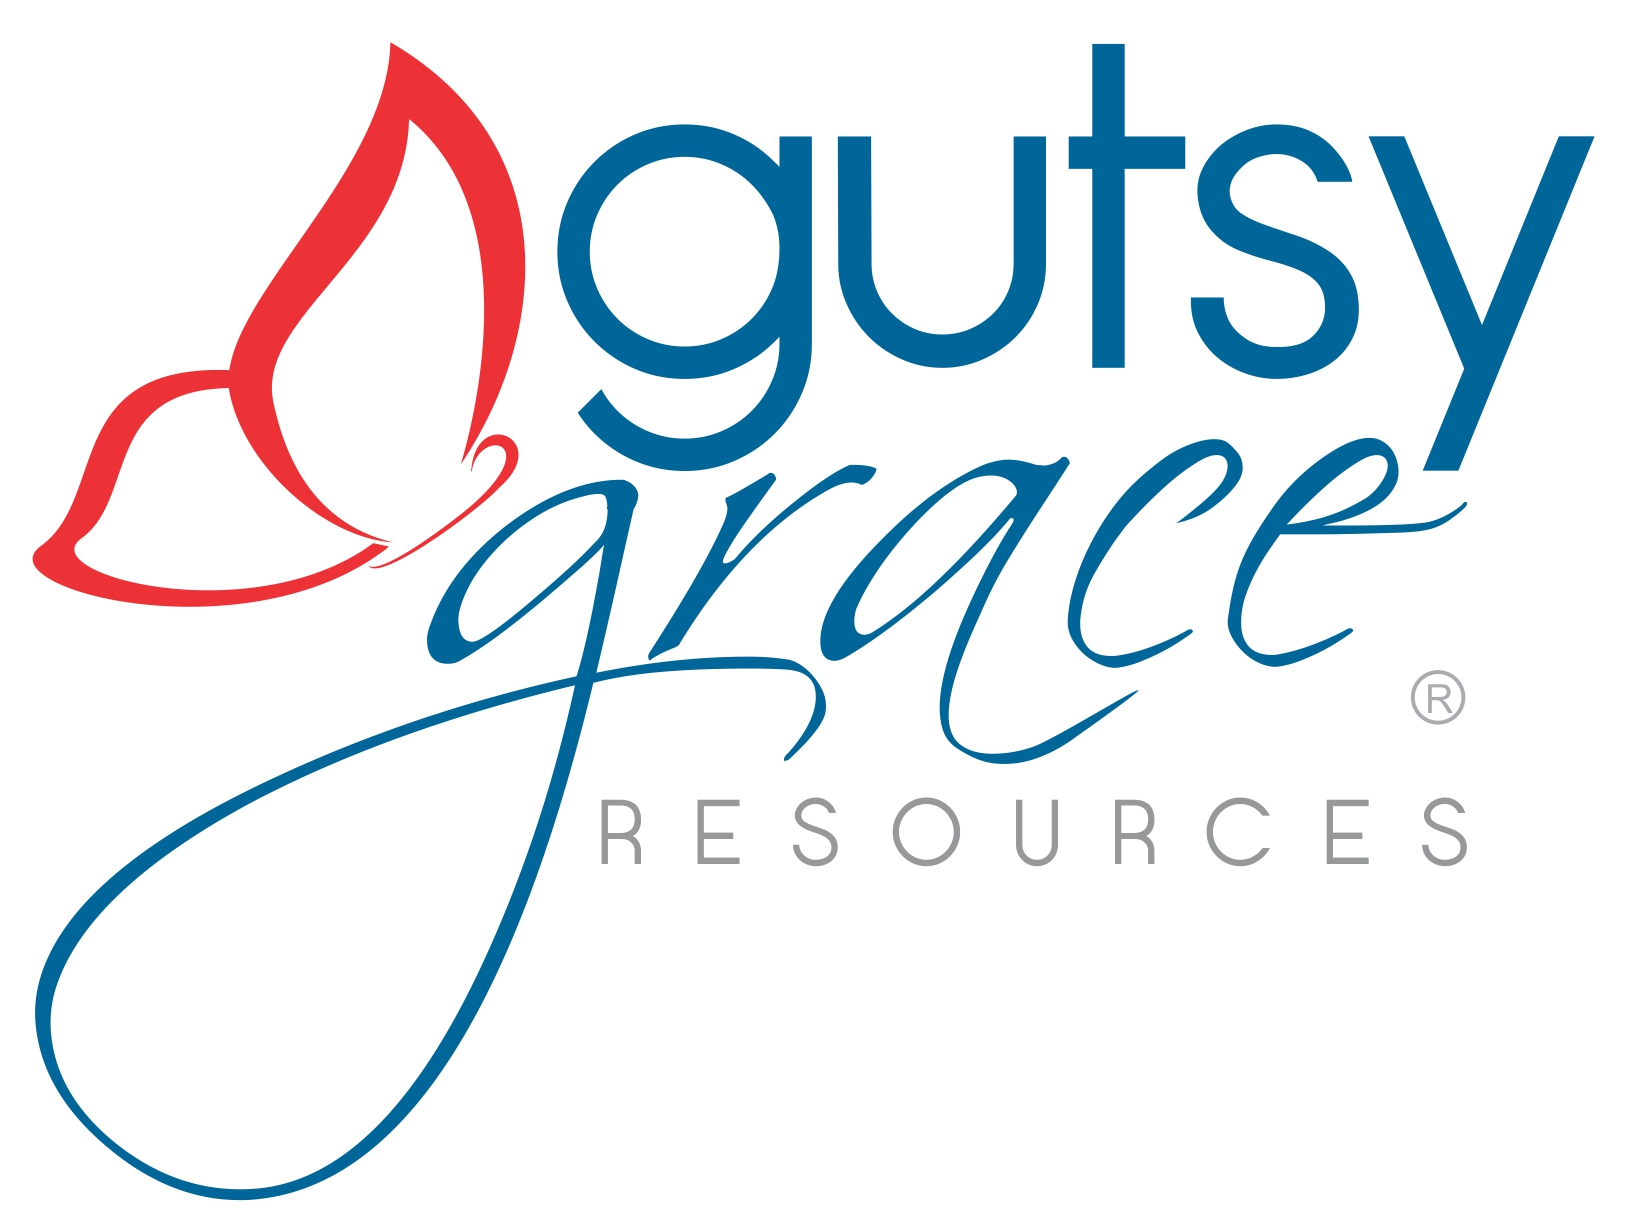 Gutsy Grace Resources - Primary Logo